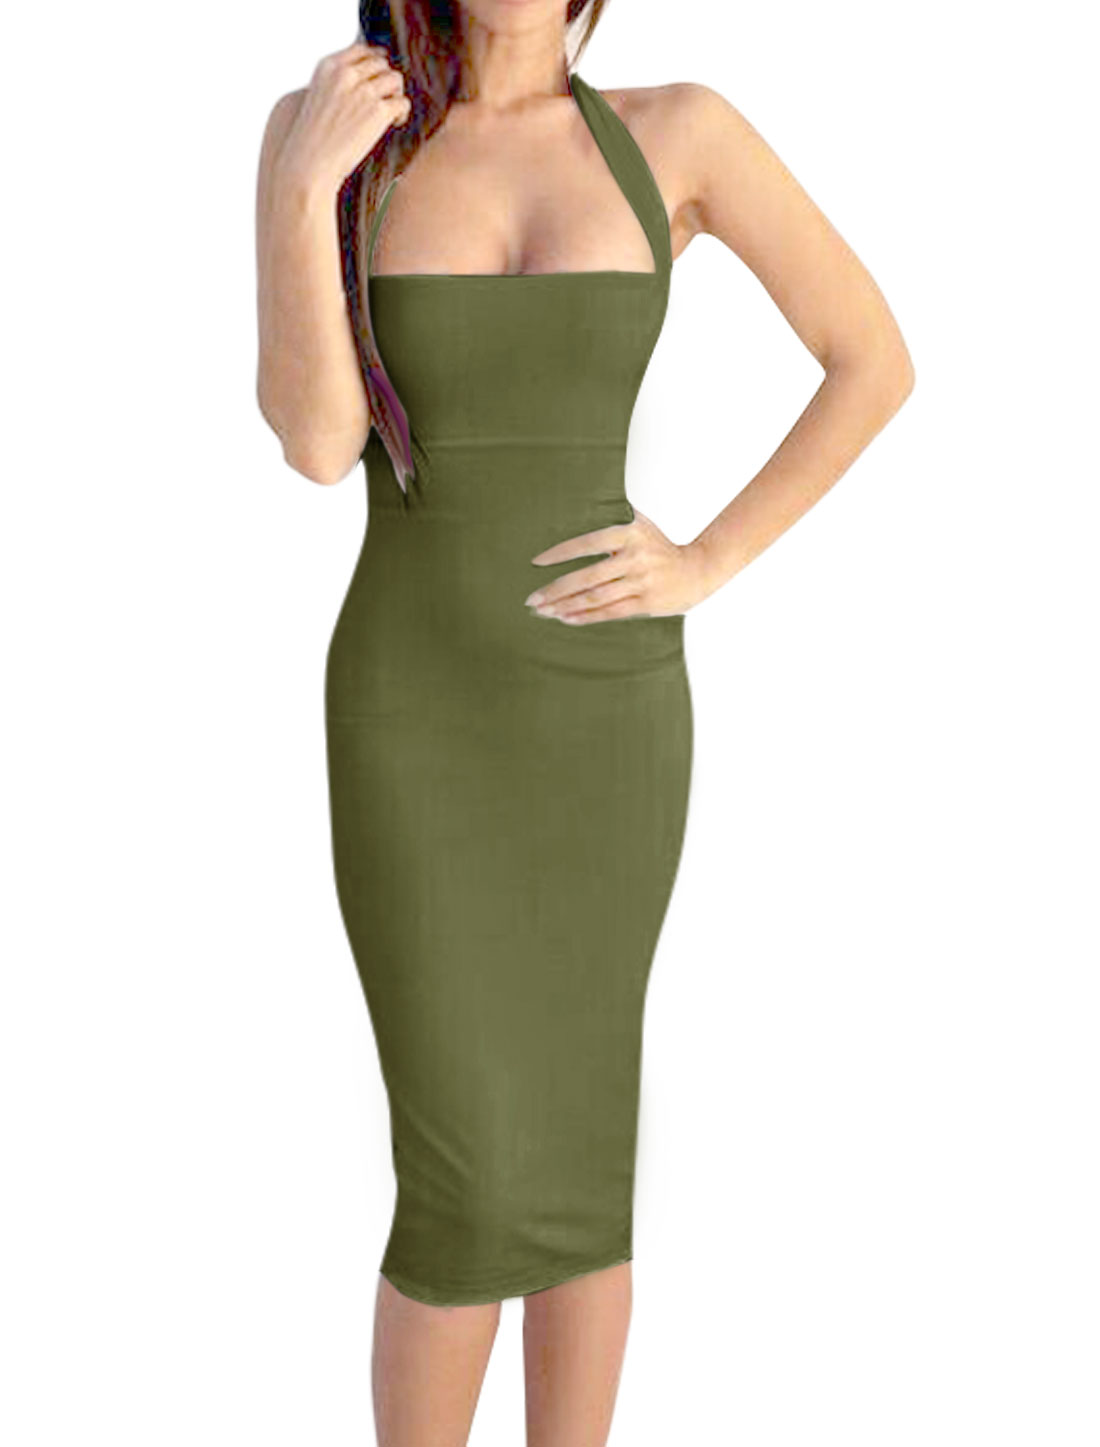 Women Halter Neck Sleeveless Open Back Sheath Dress Green L